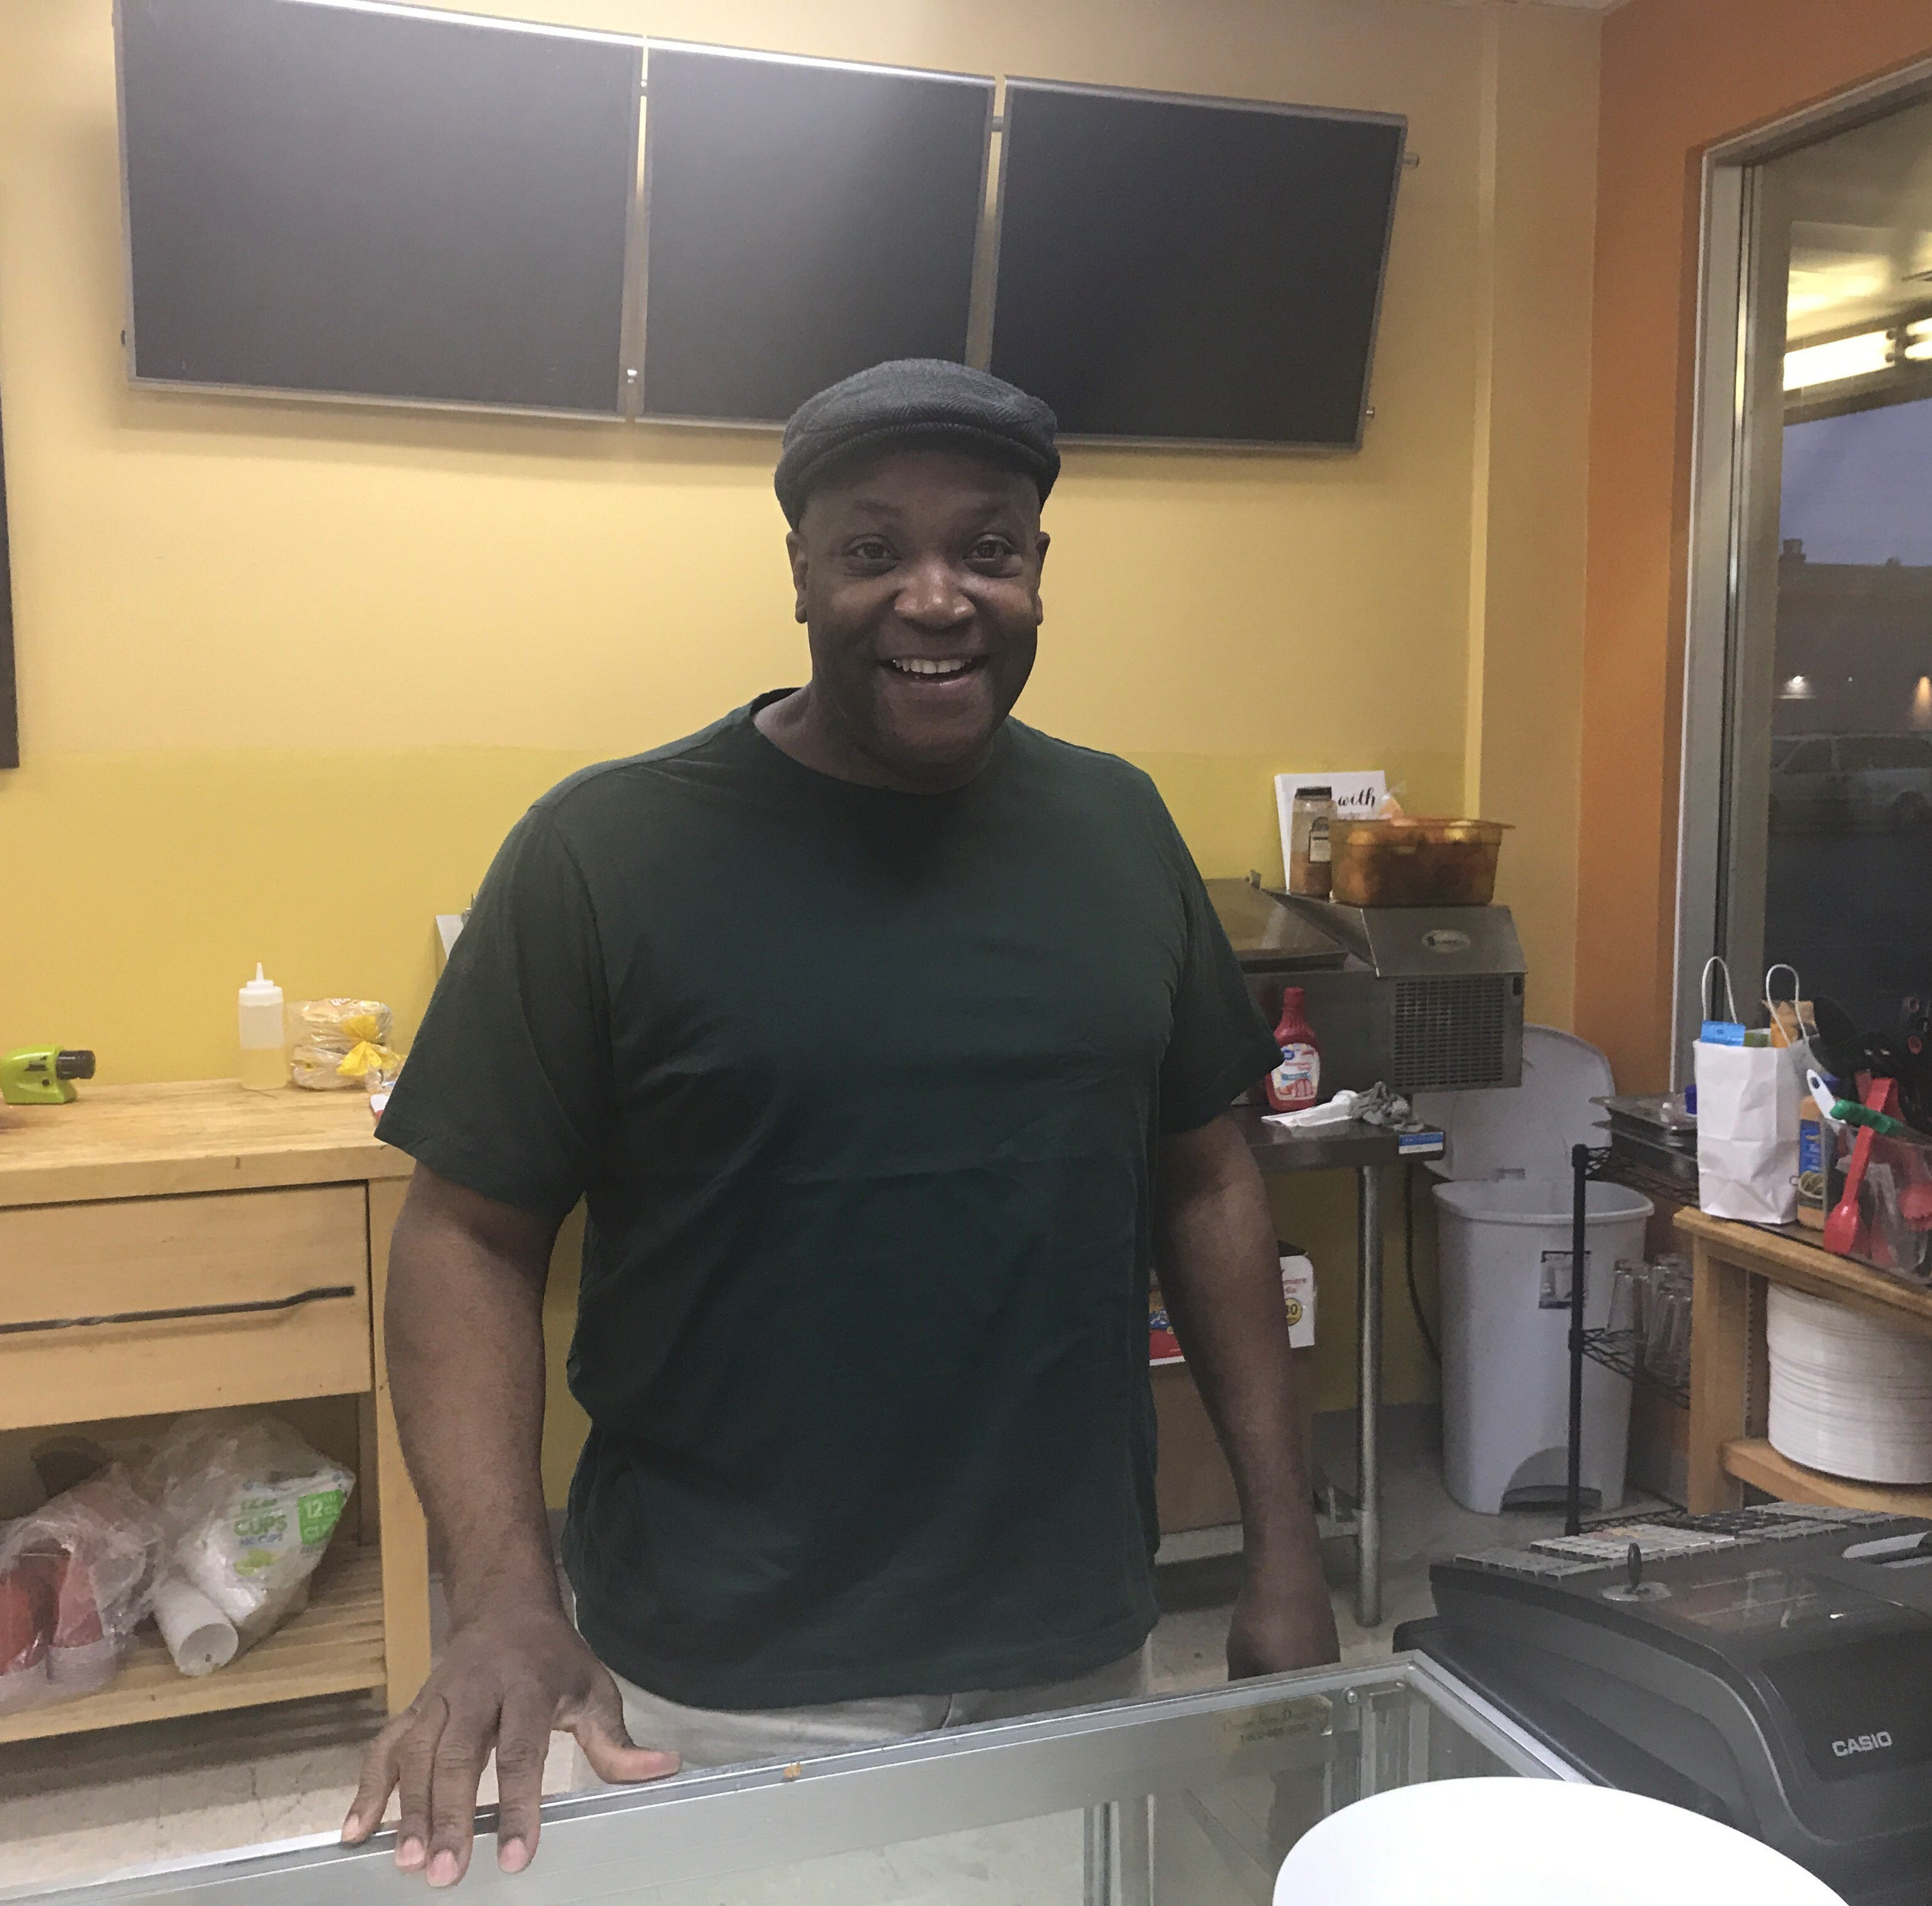 Rodney's Cafe: Oshkosh restaurant that offers jobs to people with special needs reopens